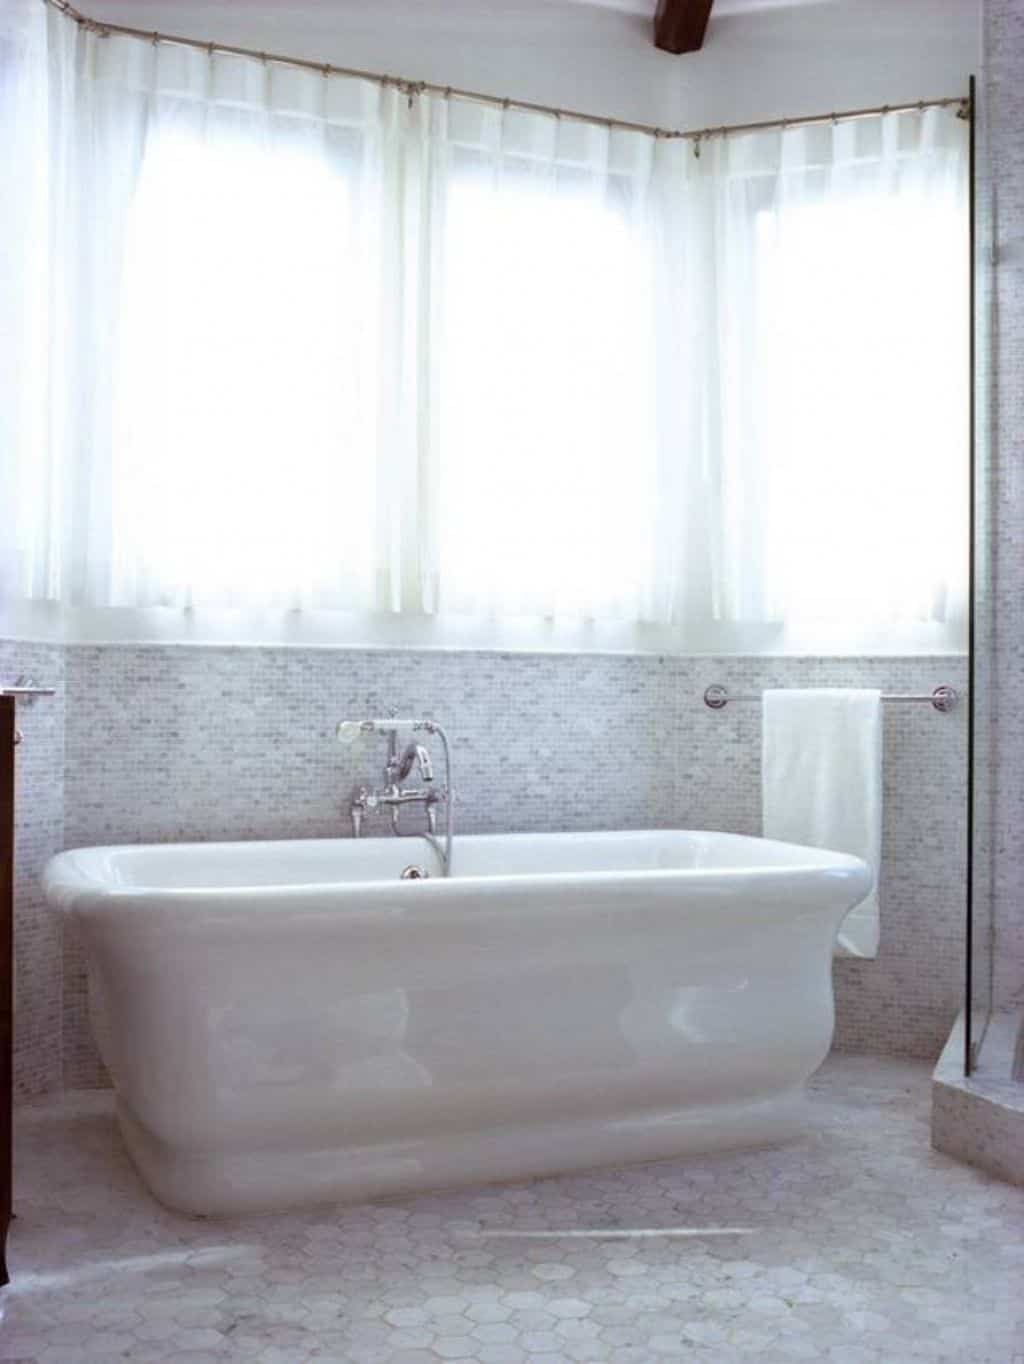 Different Curtain Types For Your Windows | Window, Window coverings ...